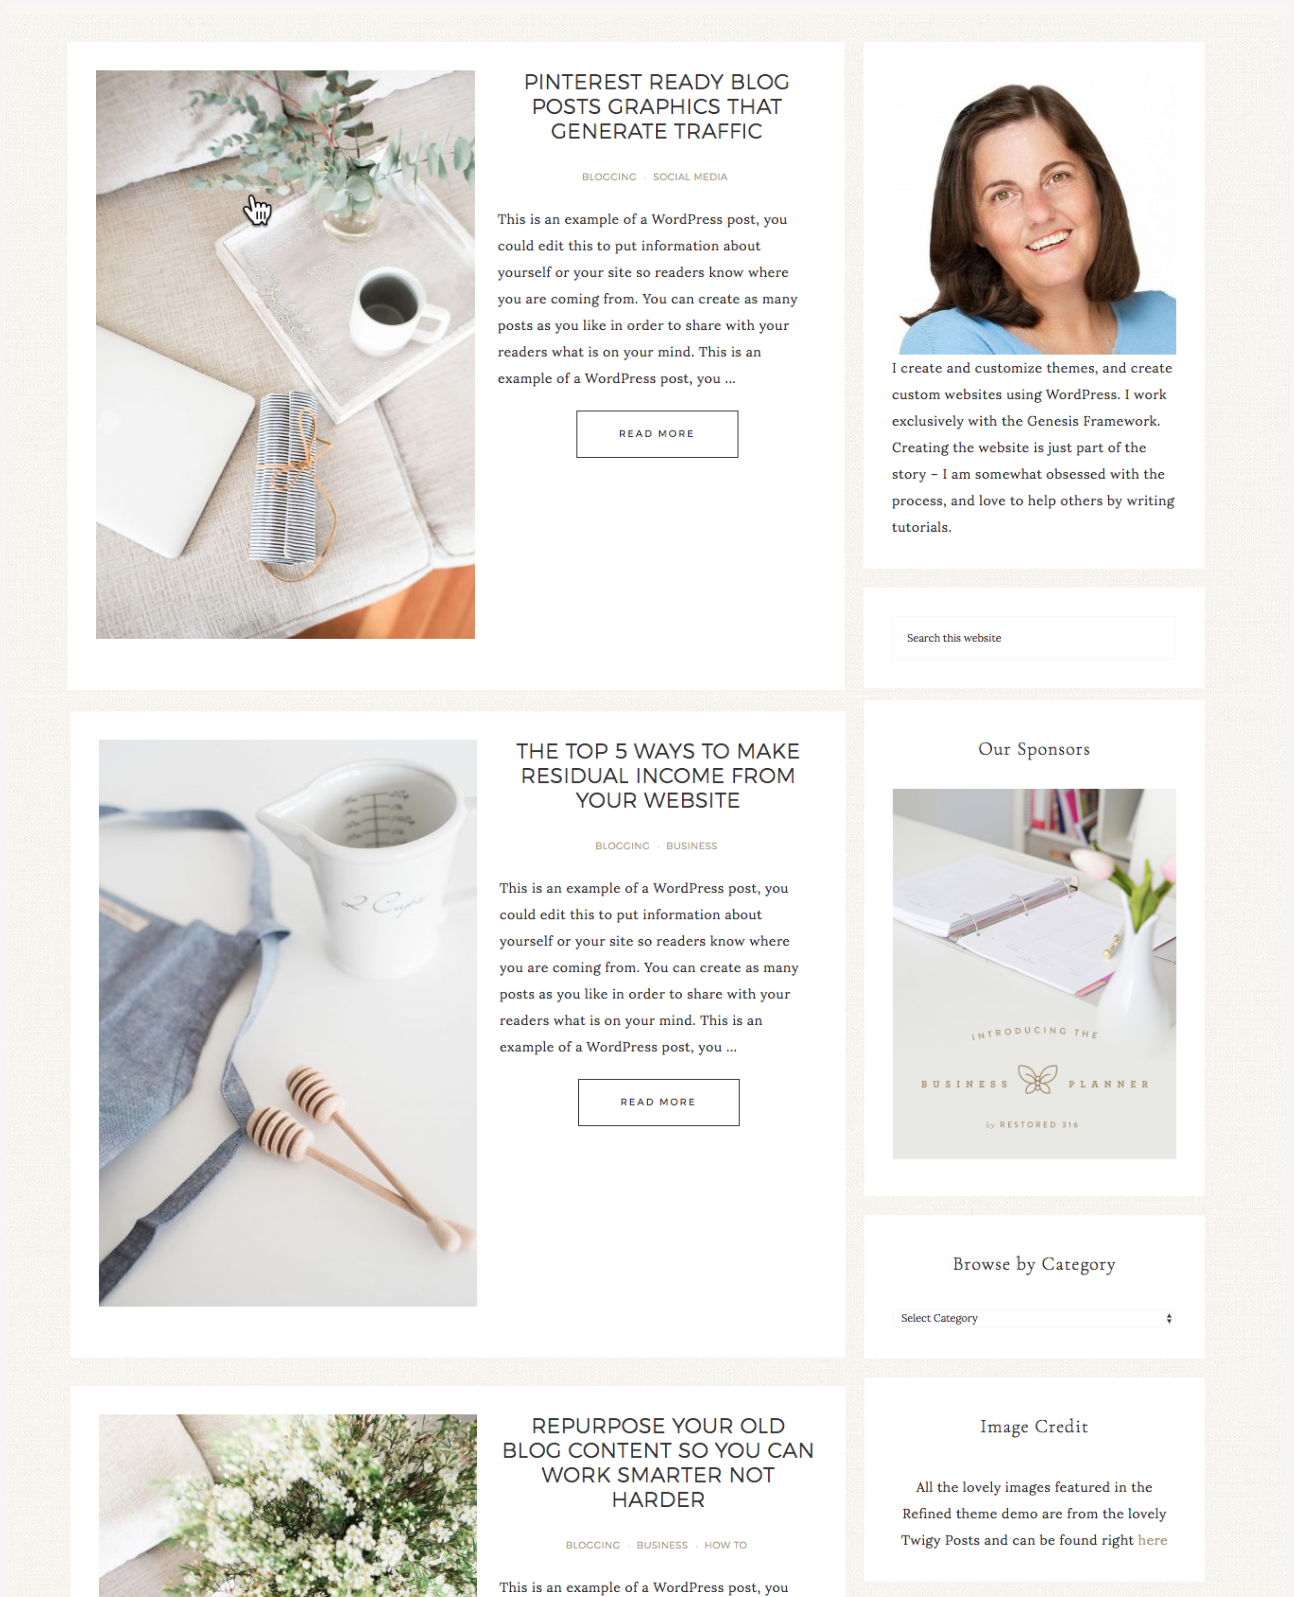 Link to Categories in Front Page 1 of the Refined Theme